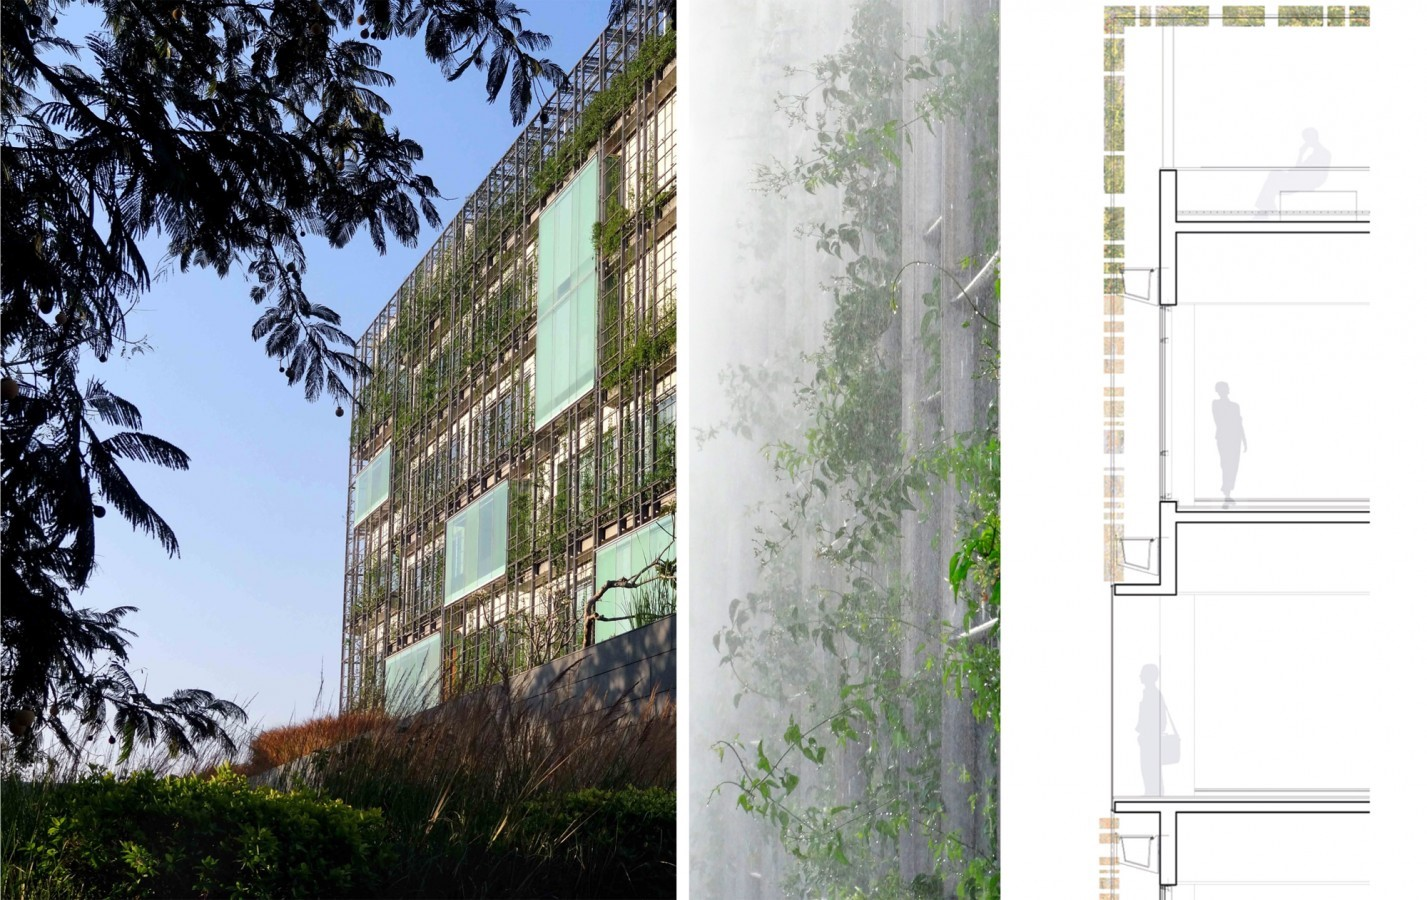 KMC Corporate Office by Rahul Mehrotra: Modulation of light and air - Sheet1